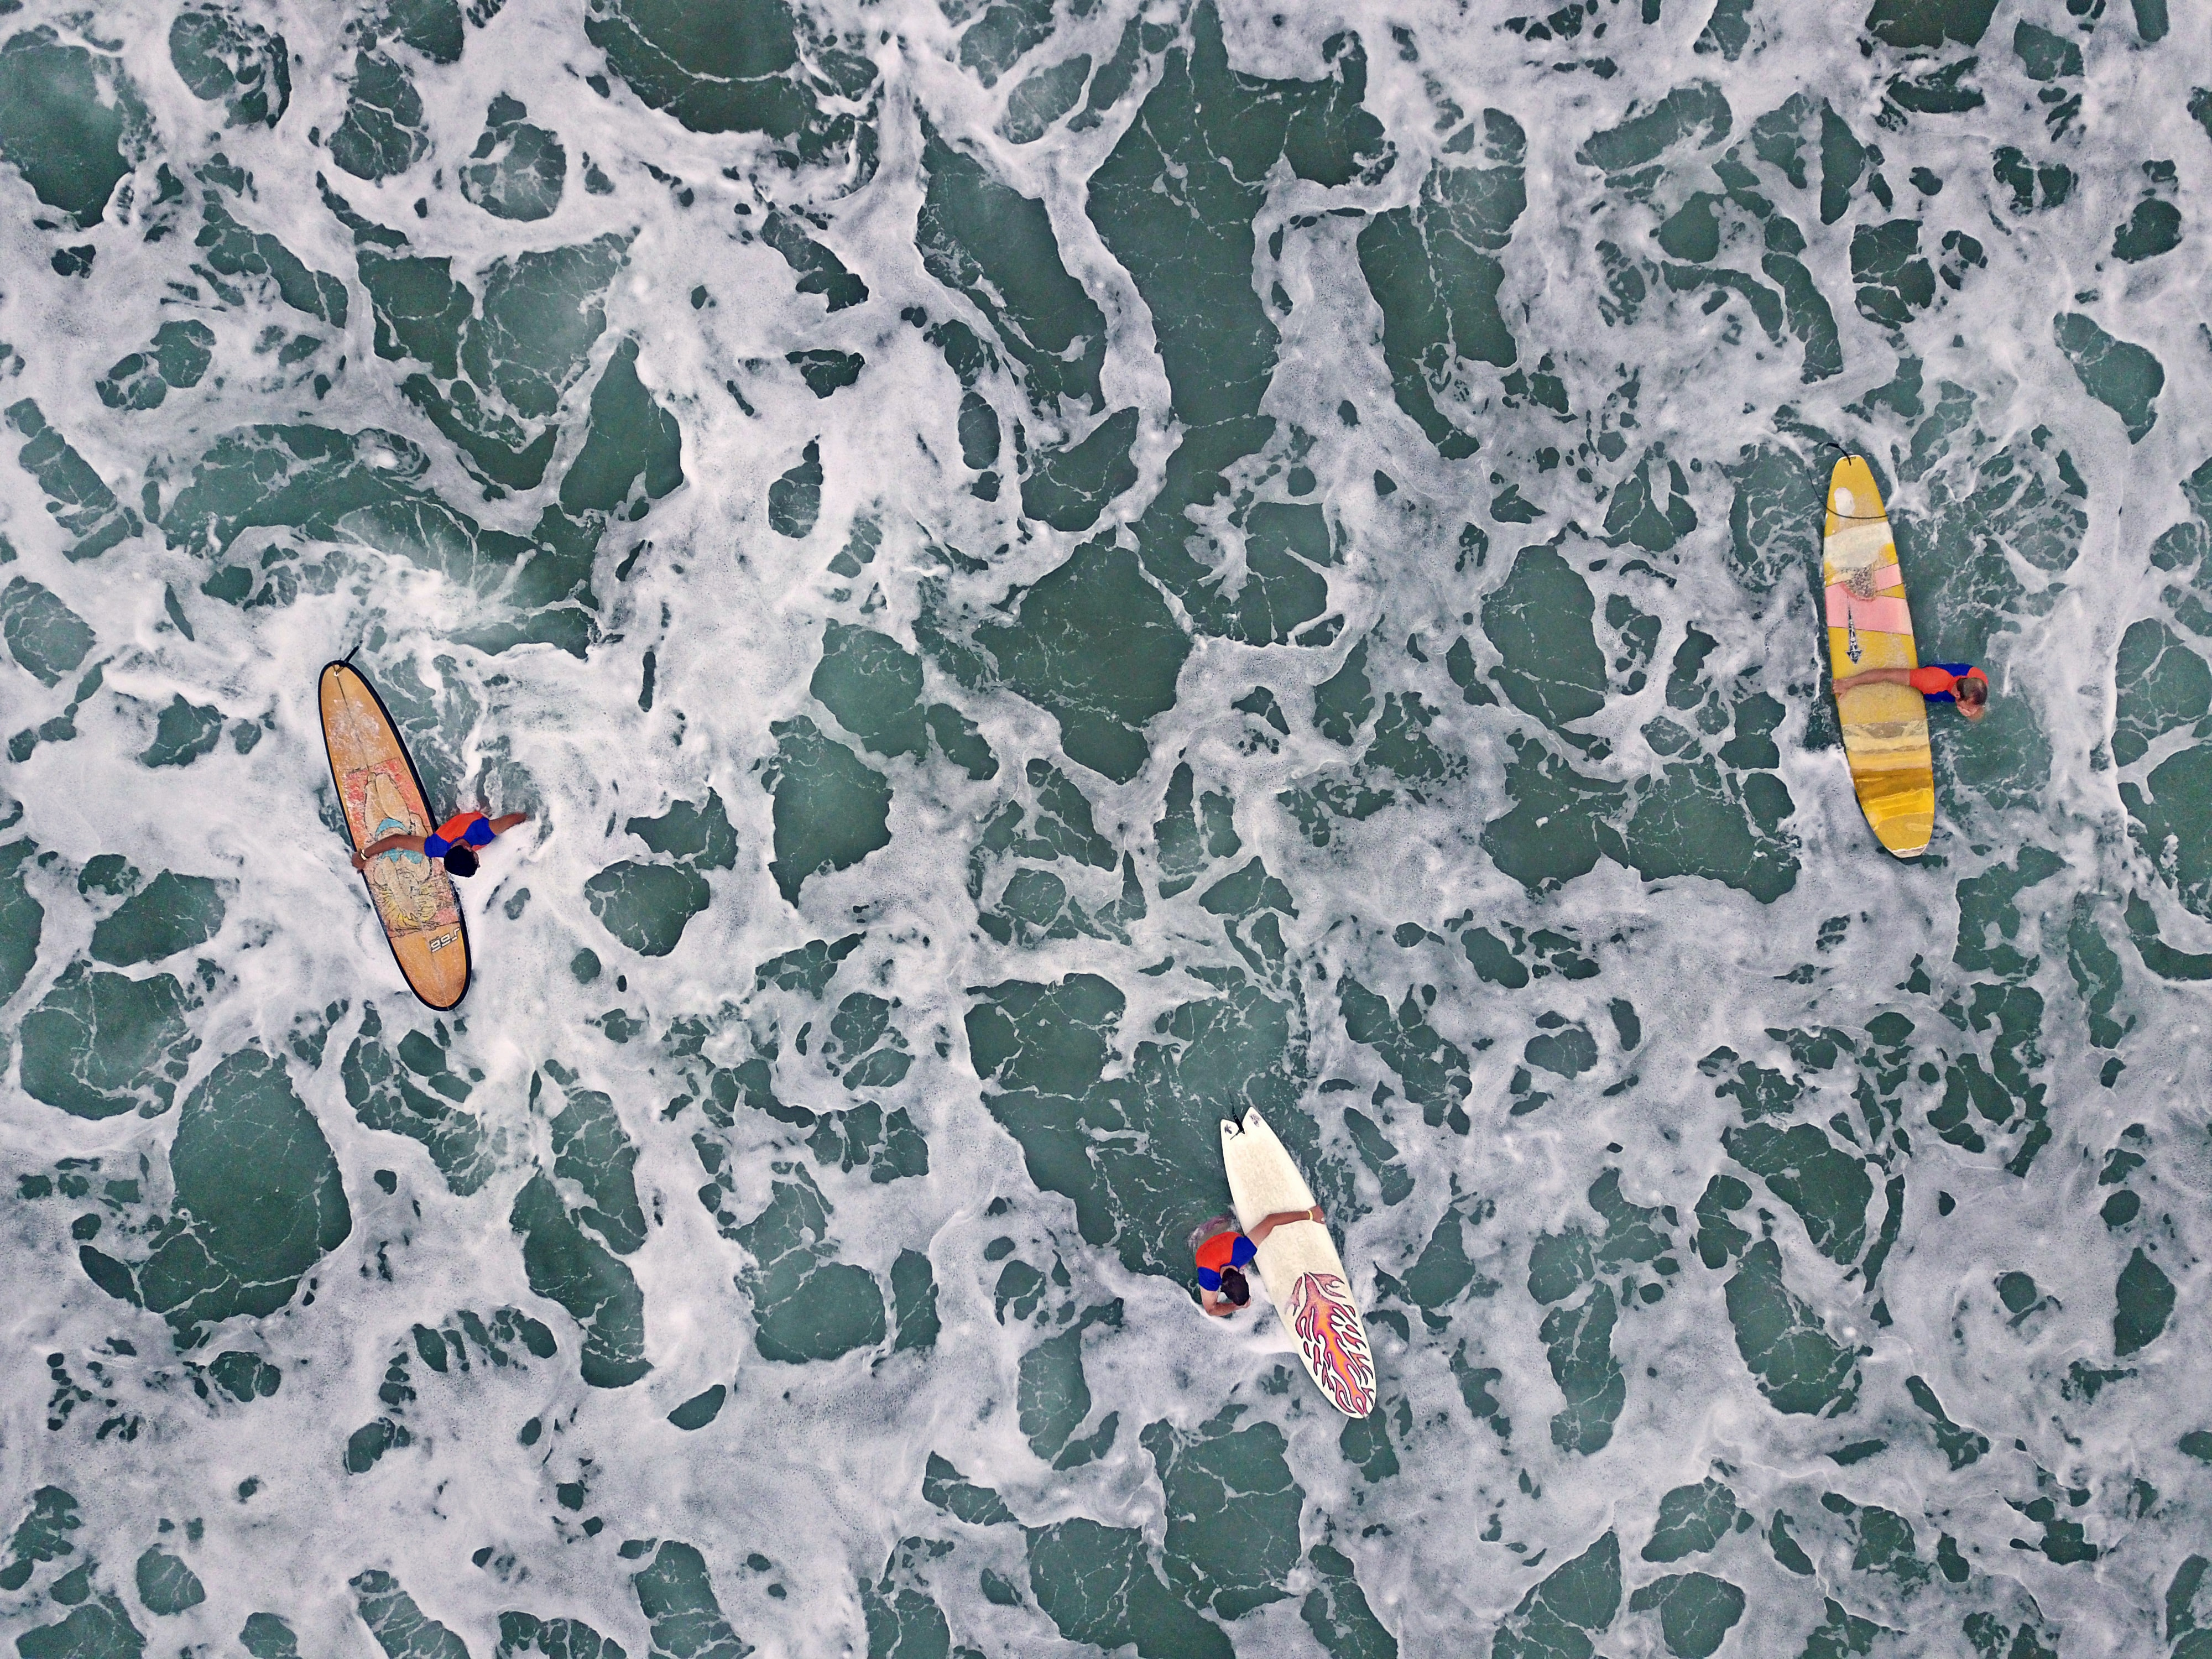 aerial view of people carrying surfboards